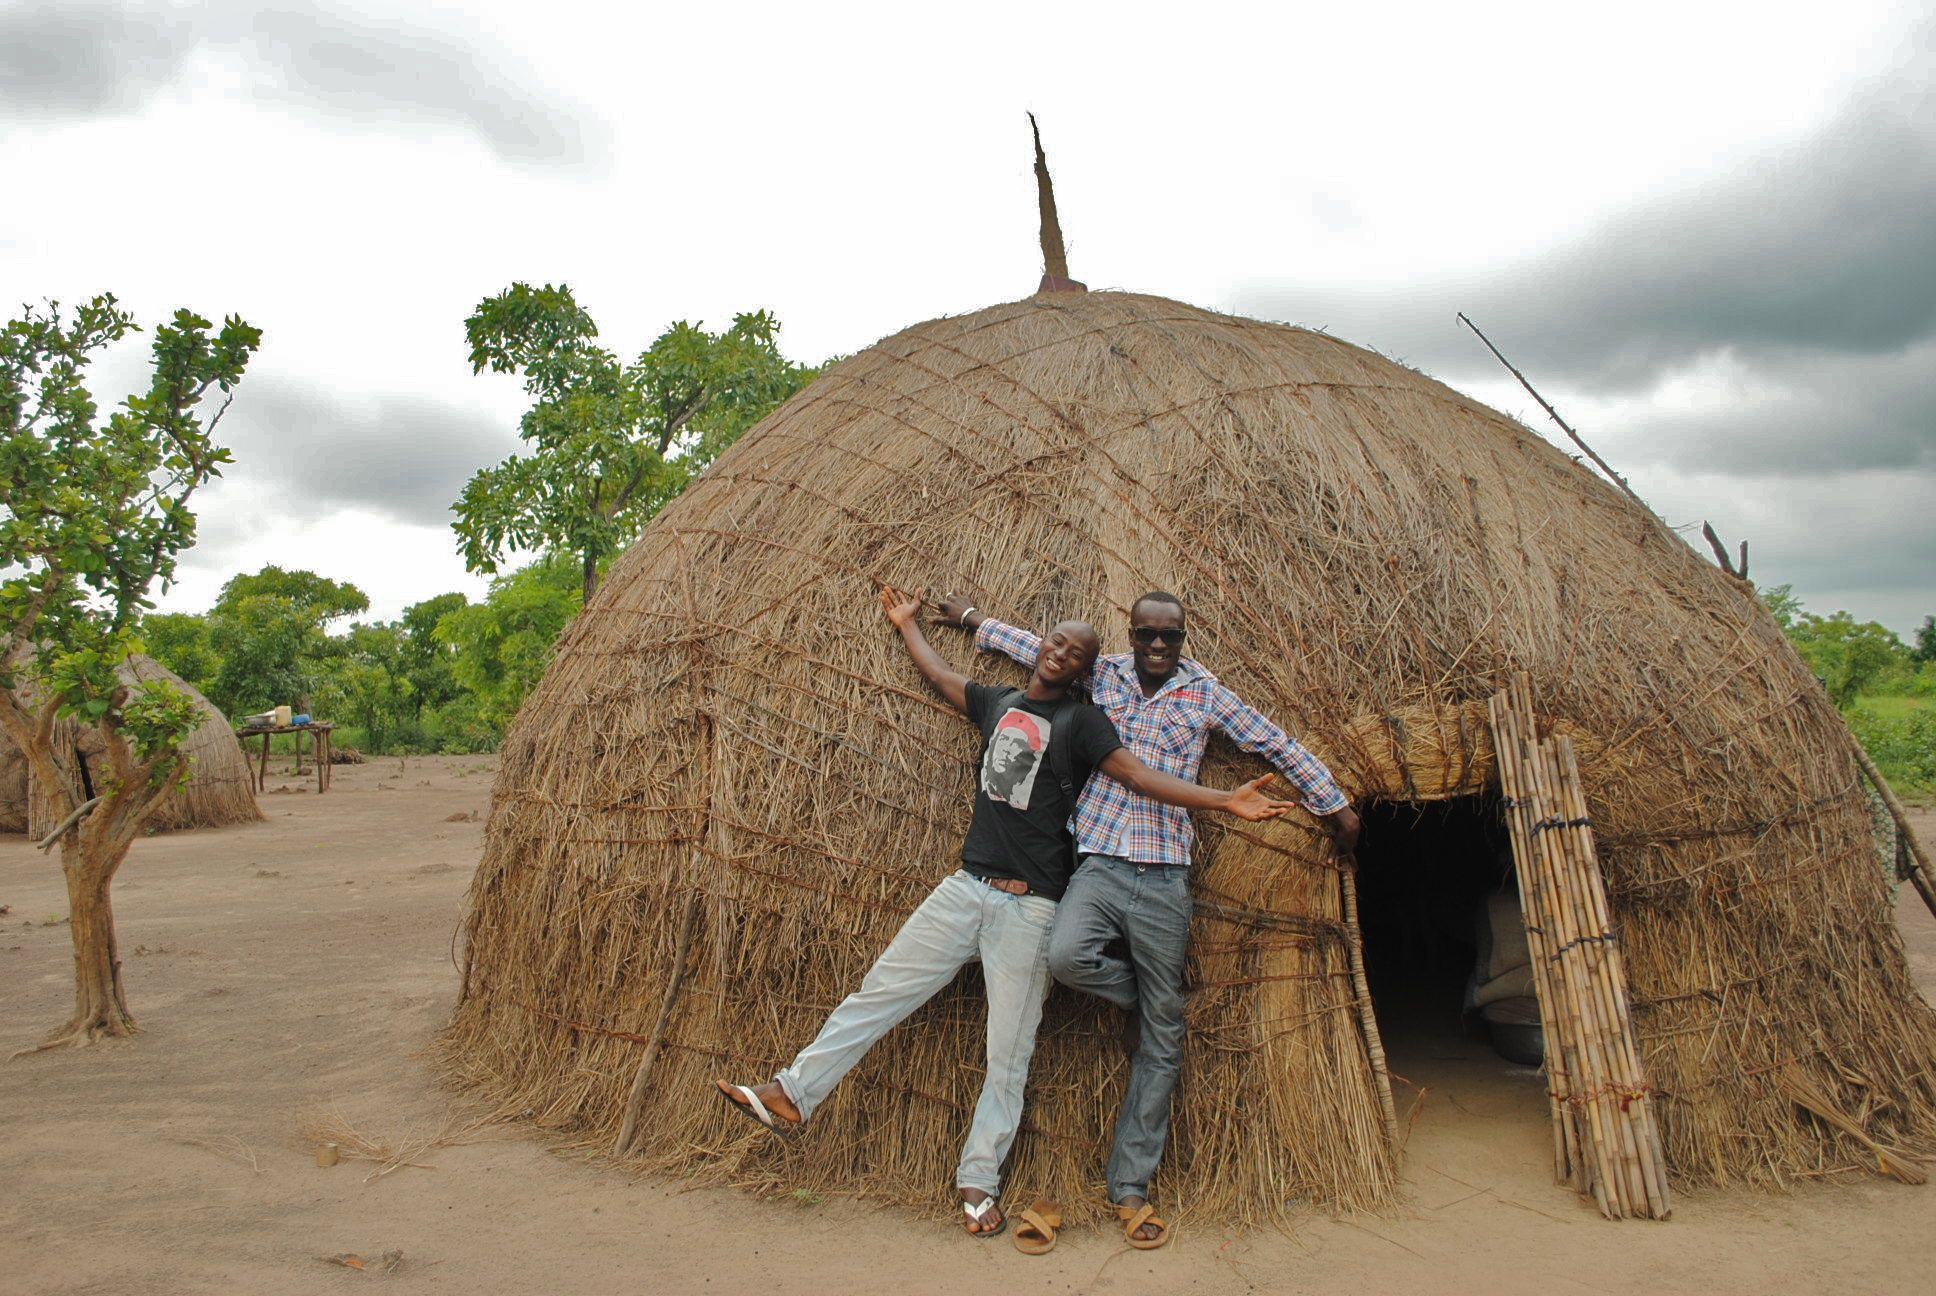 Woven Fulani House In Kpalbusi Village, Northern Ghana